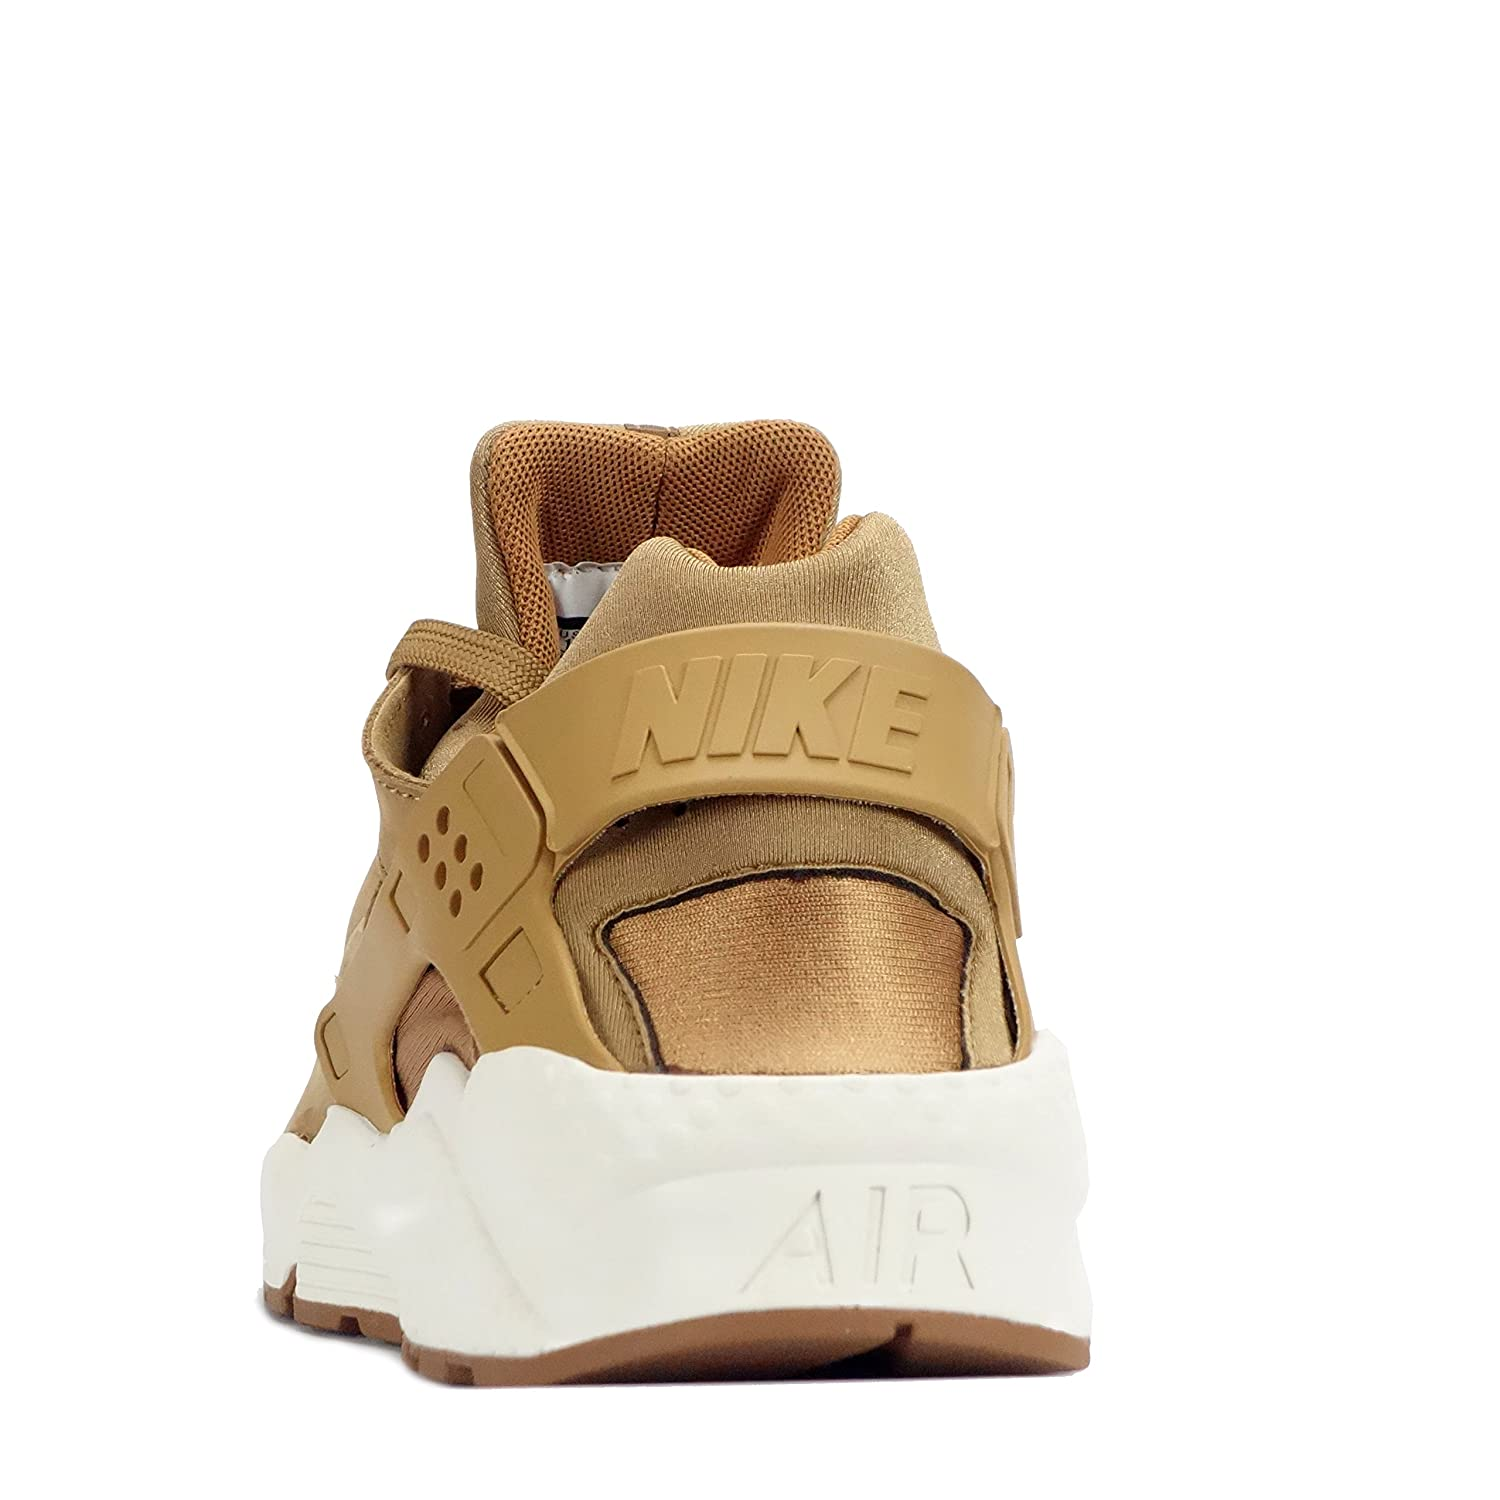 12 Nike Air Huarache 318429 202 Flax//Sail-Gum//Brown